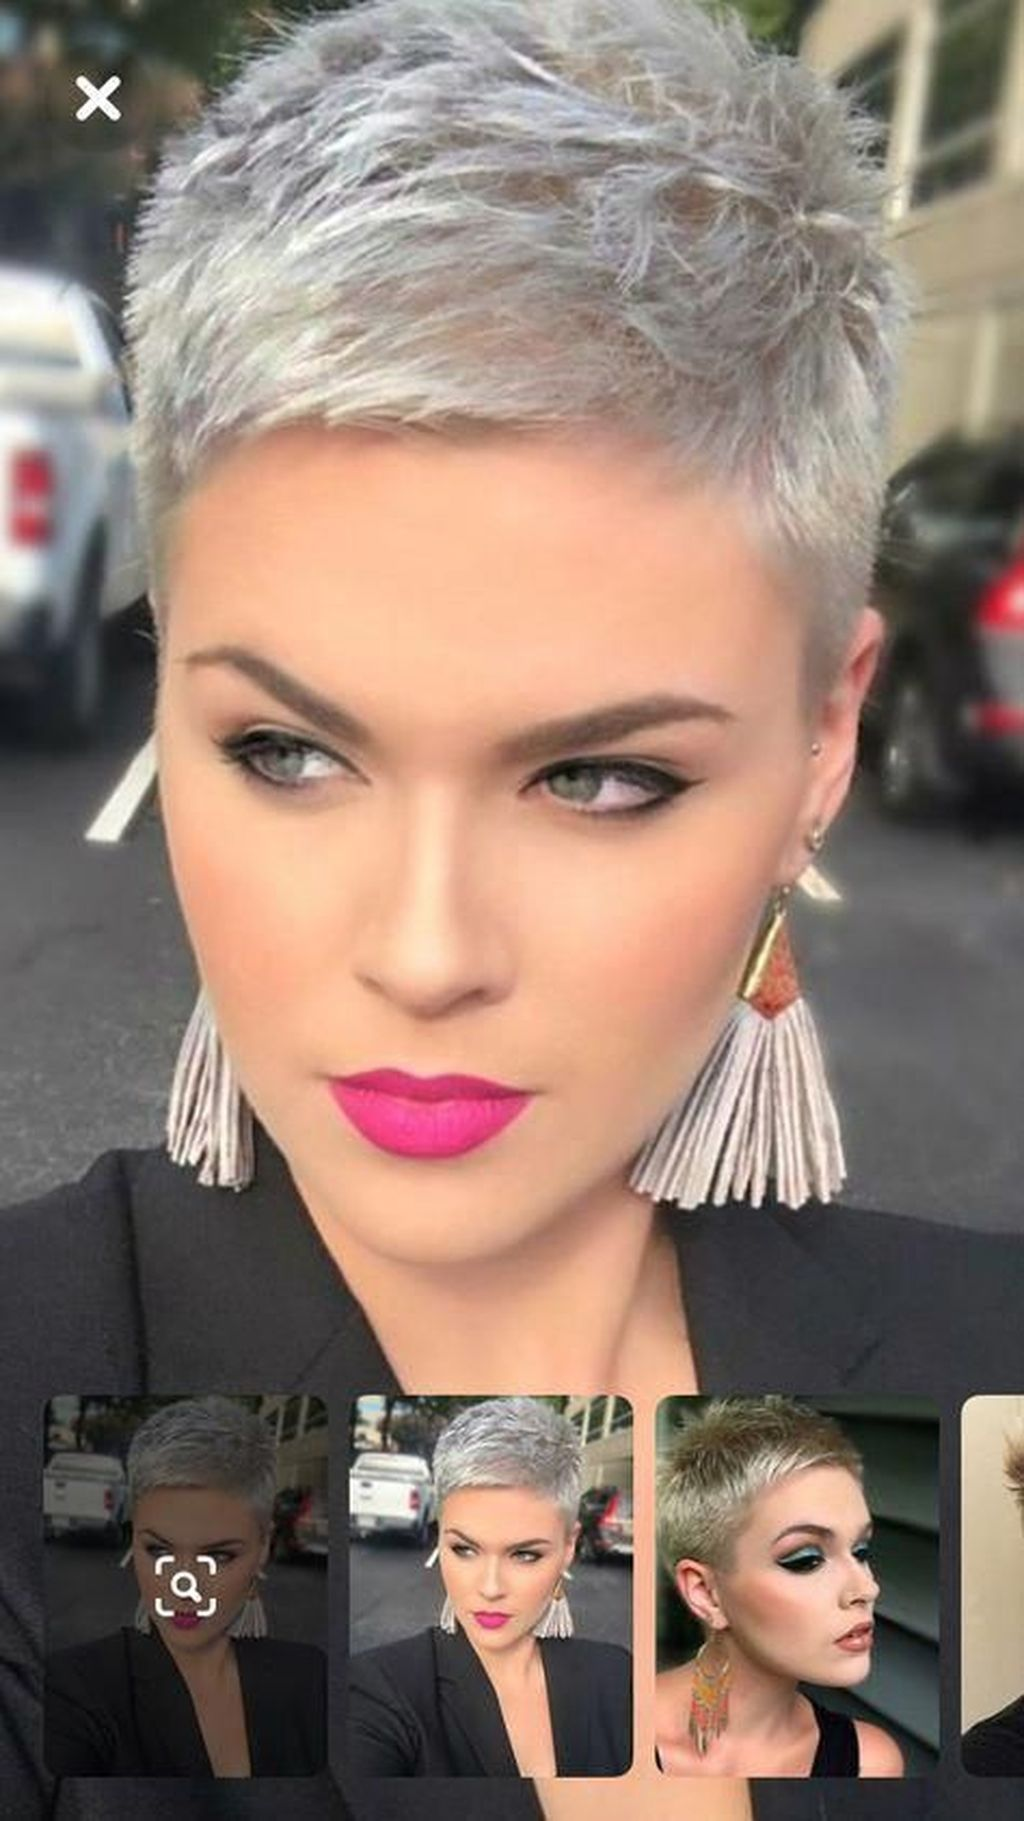 30+ Excellent Summer Hairstyles And Haircuts Ideas For Women To Try -   14 hairstyles Corto woman ideas